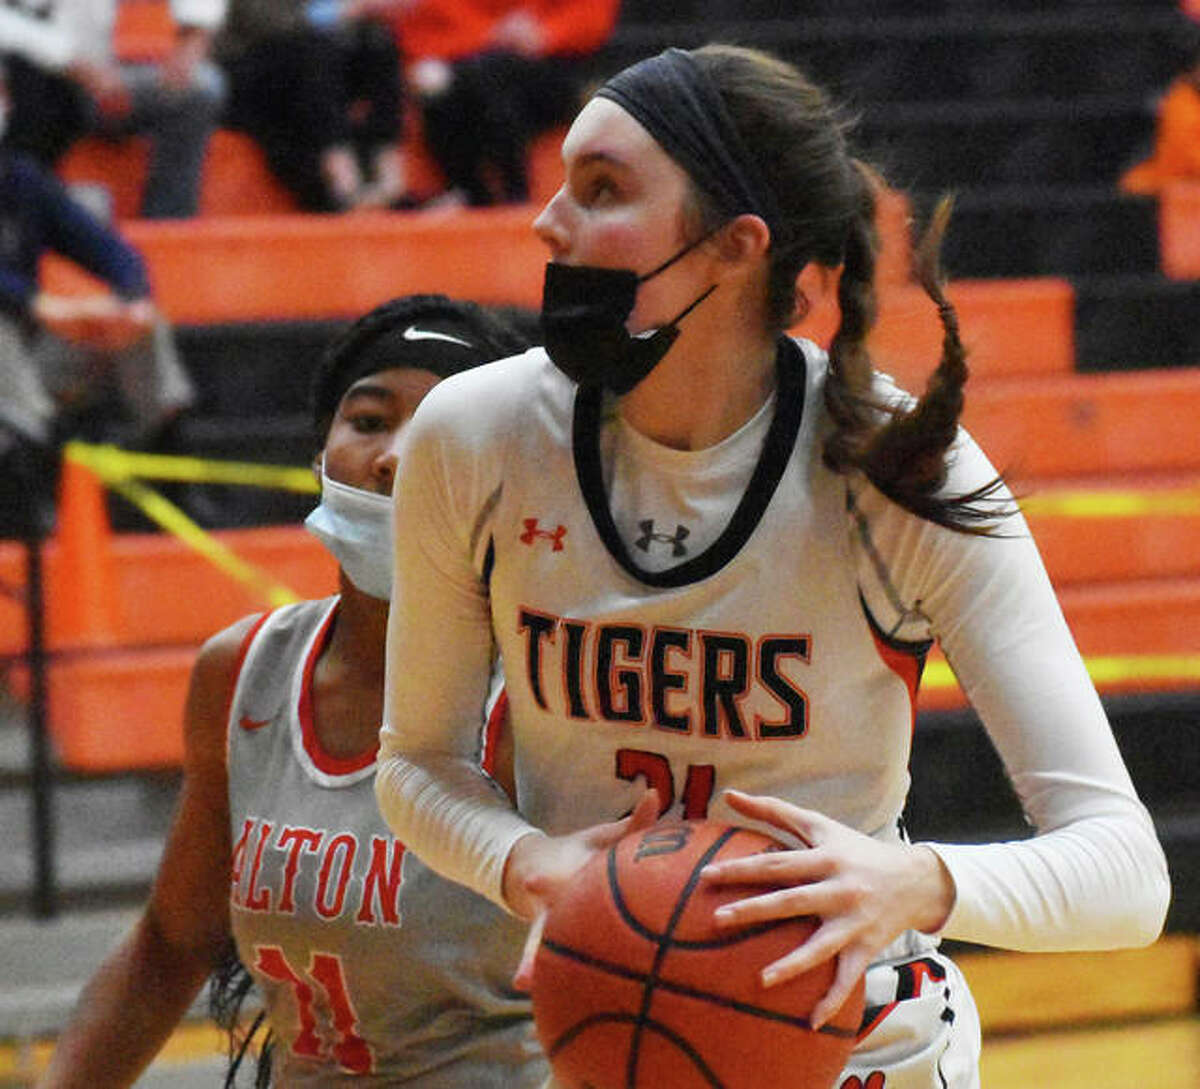 Edwardsville's Elle Evans takes the ball to the basket after stealing the ball at midcourt during the second half of Saturday's game against Alton in Edwardsville.